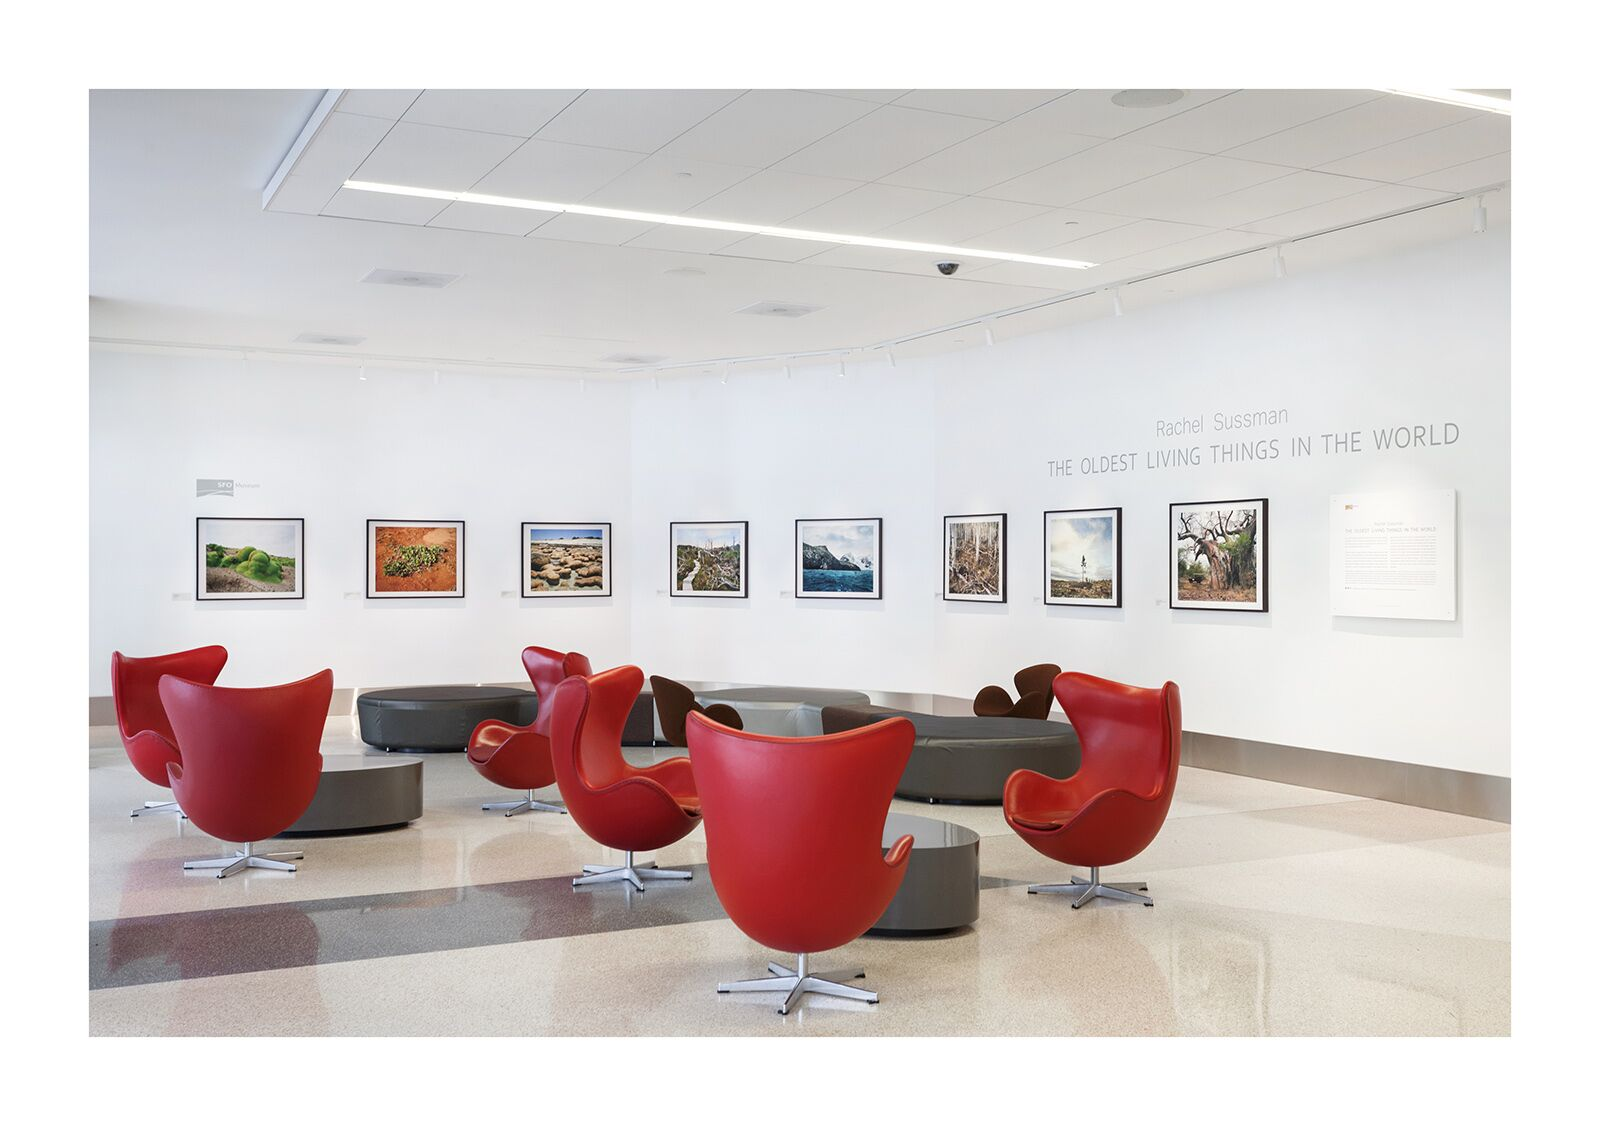 Photos displayed are from Rachel Sussman's  The Oldest Living Things in the World,  as displayed in SFO Terminal 3 from April 19 - July 12, 2018. Courtesy of SFO Museum.